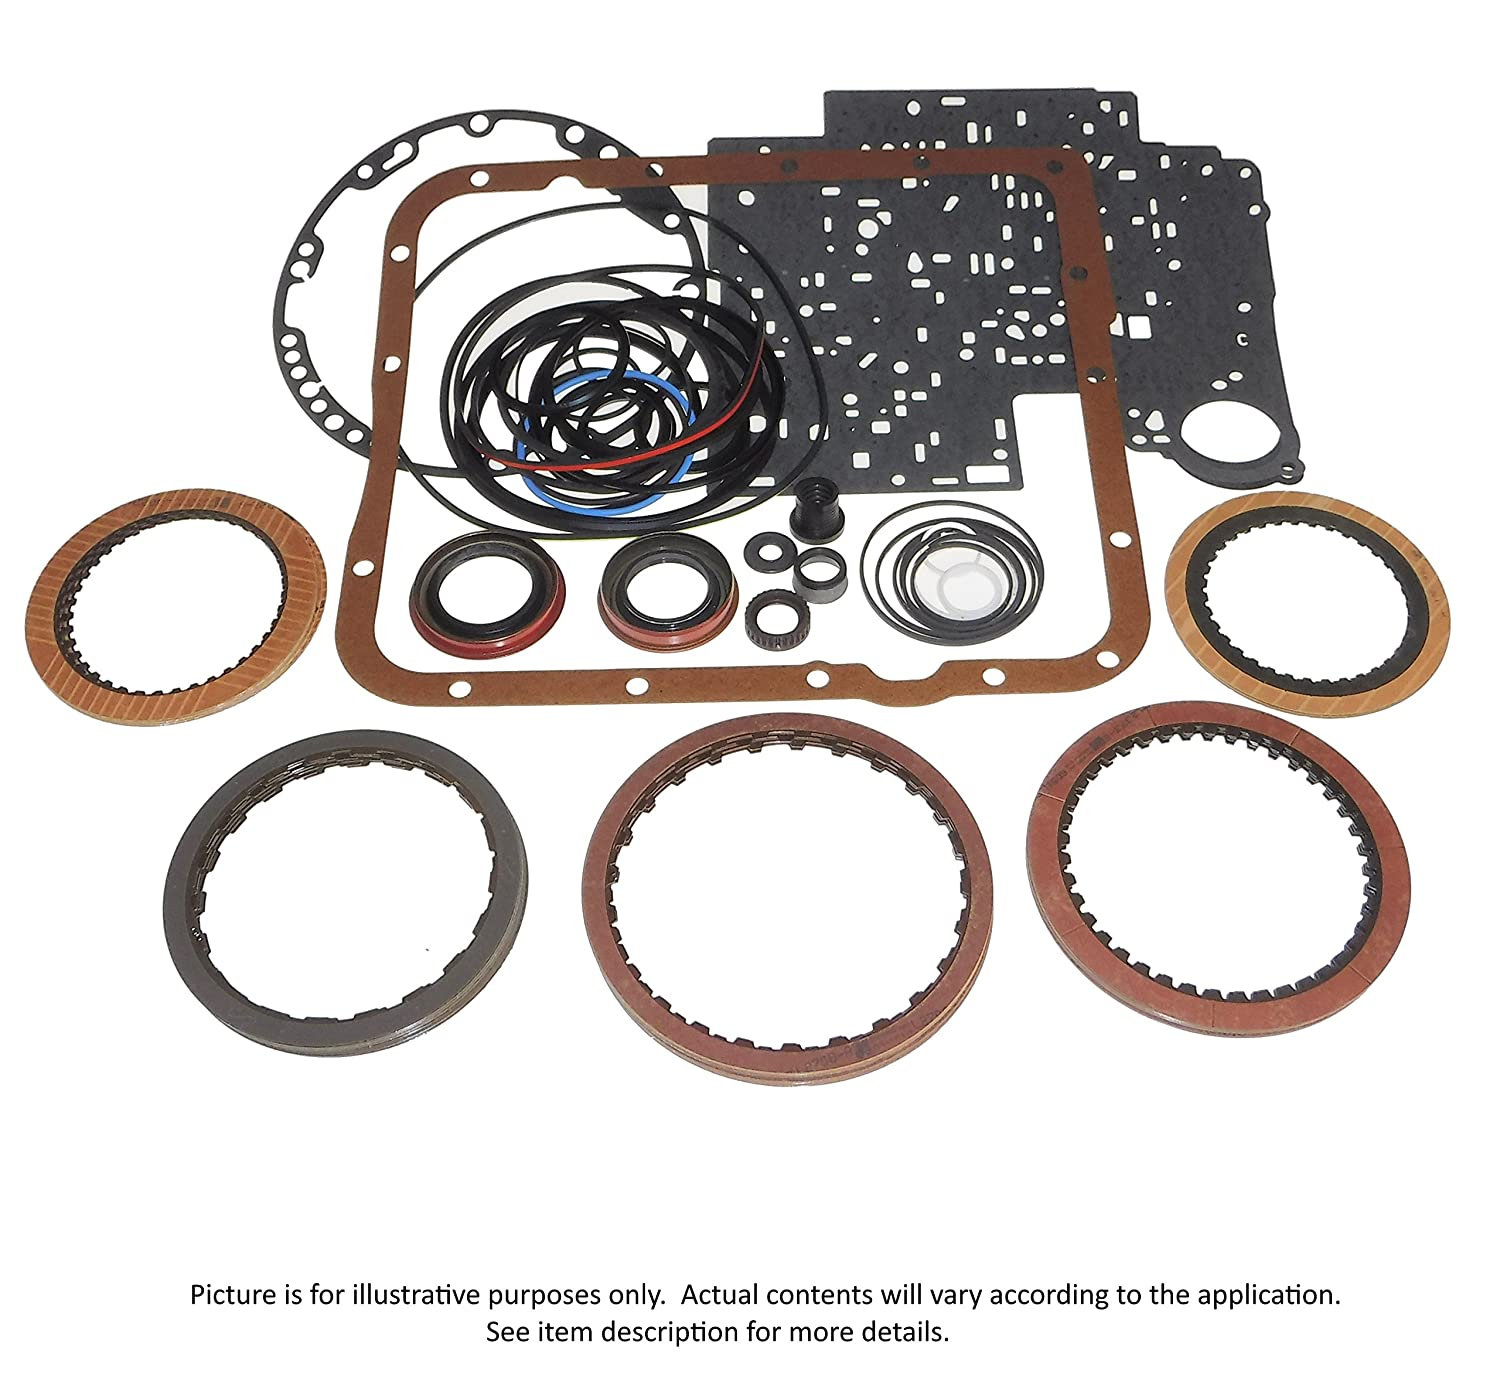 Transmaxx Transmission Rebuild Banner Kit Less Steels 48RE 03-17